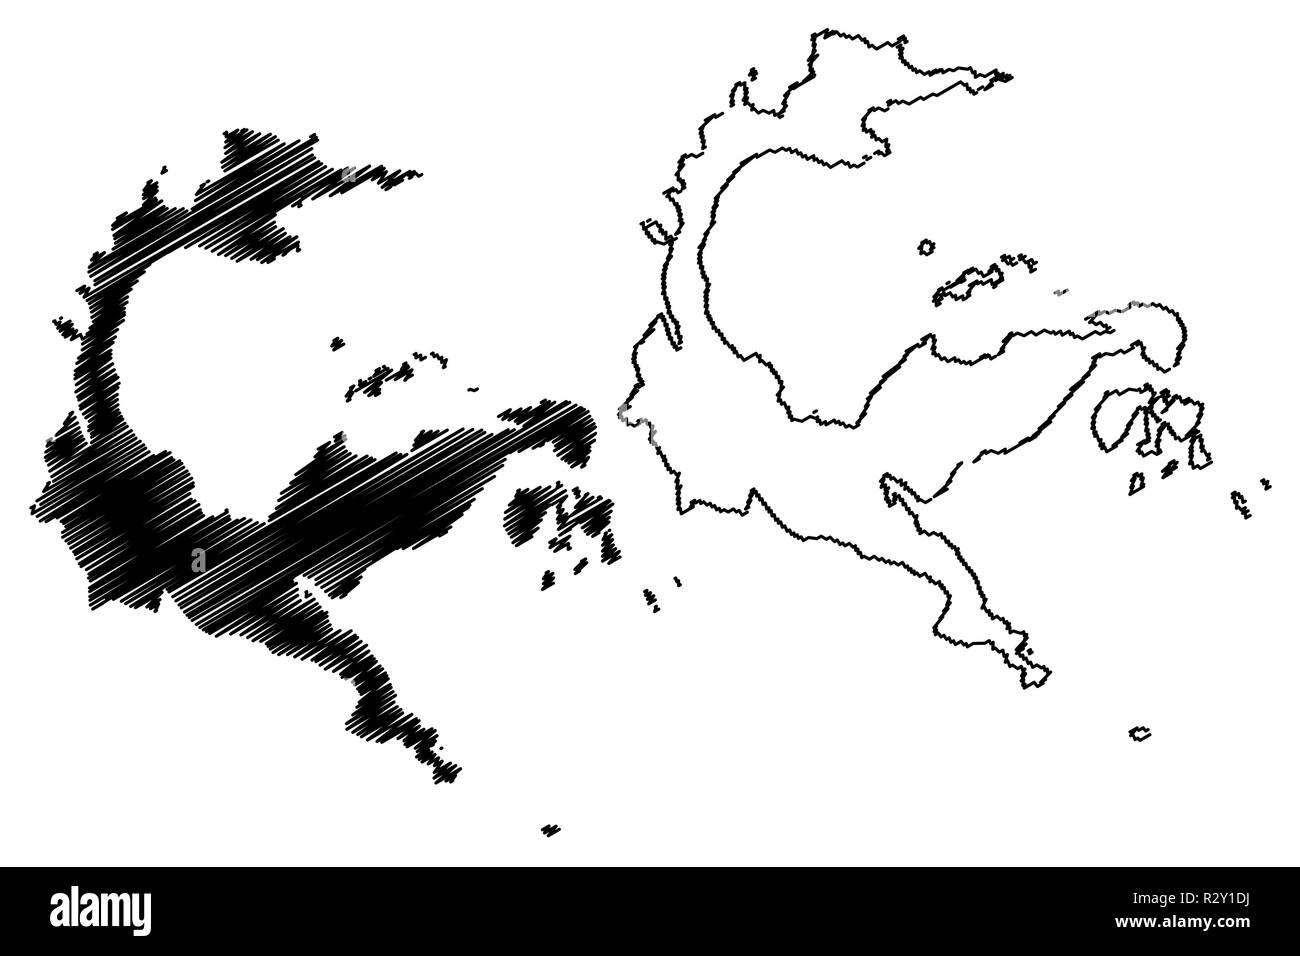 Central Sulawesi (Subdivisions of Indonesia, Provinces of Indonesia) map vector illustration, scribble sketch Sulawesi Tengah map - Stock Image